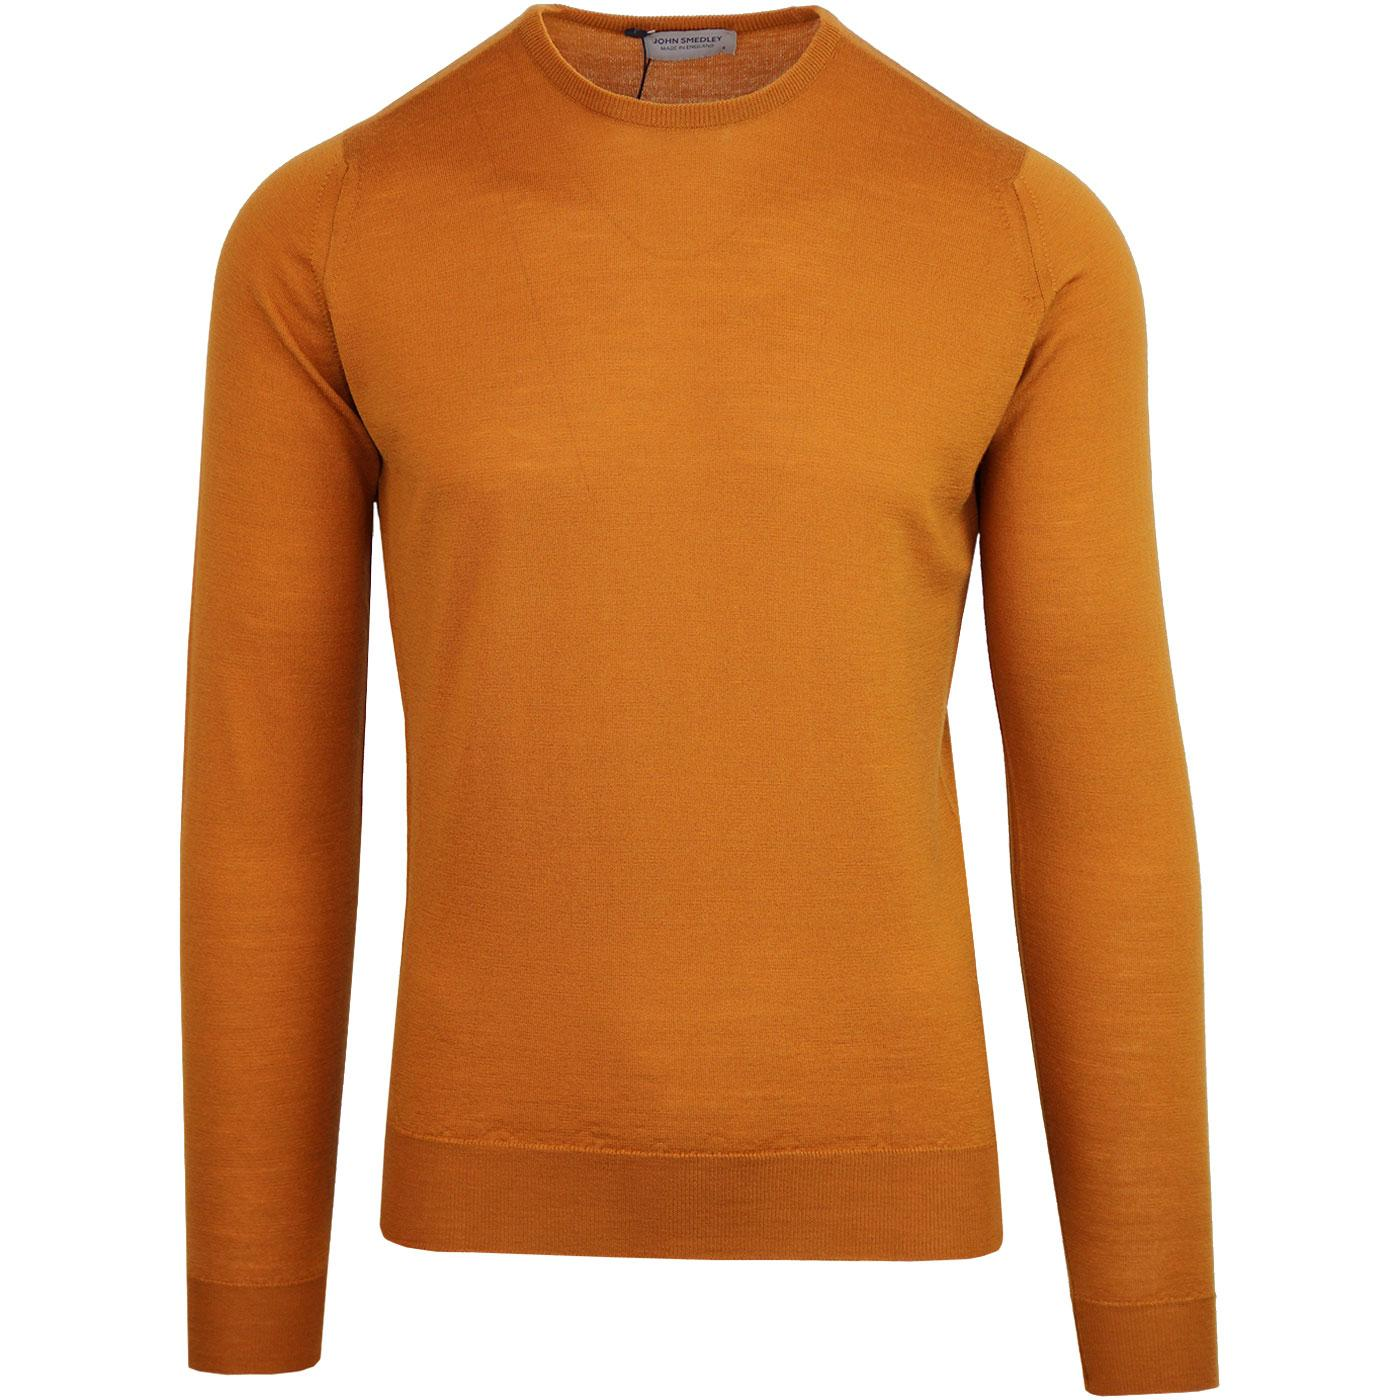 Lundy JOHN SMEDLEY Made in England Jumper BRONZE